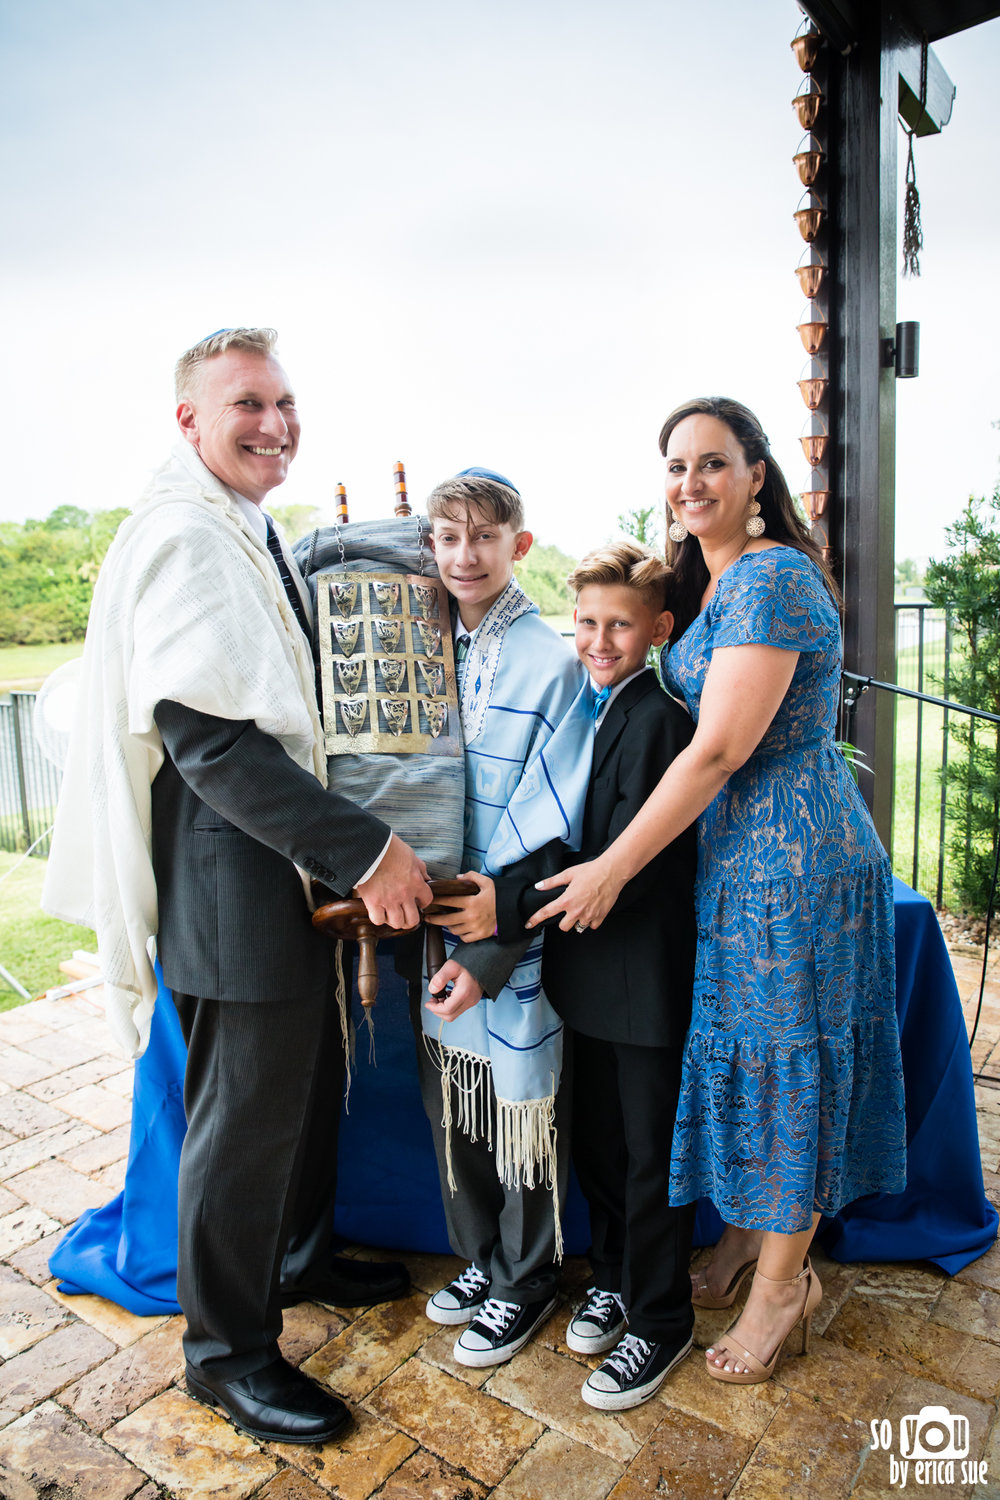 bar-mitzvah-photography-ft-lauderdale-so-you-by-erica-sue-7650.jpg